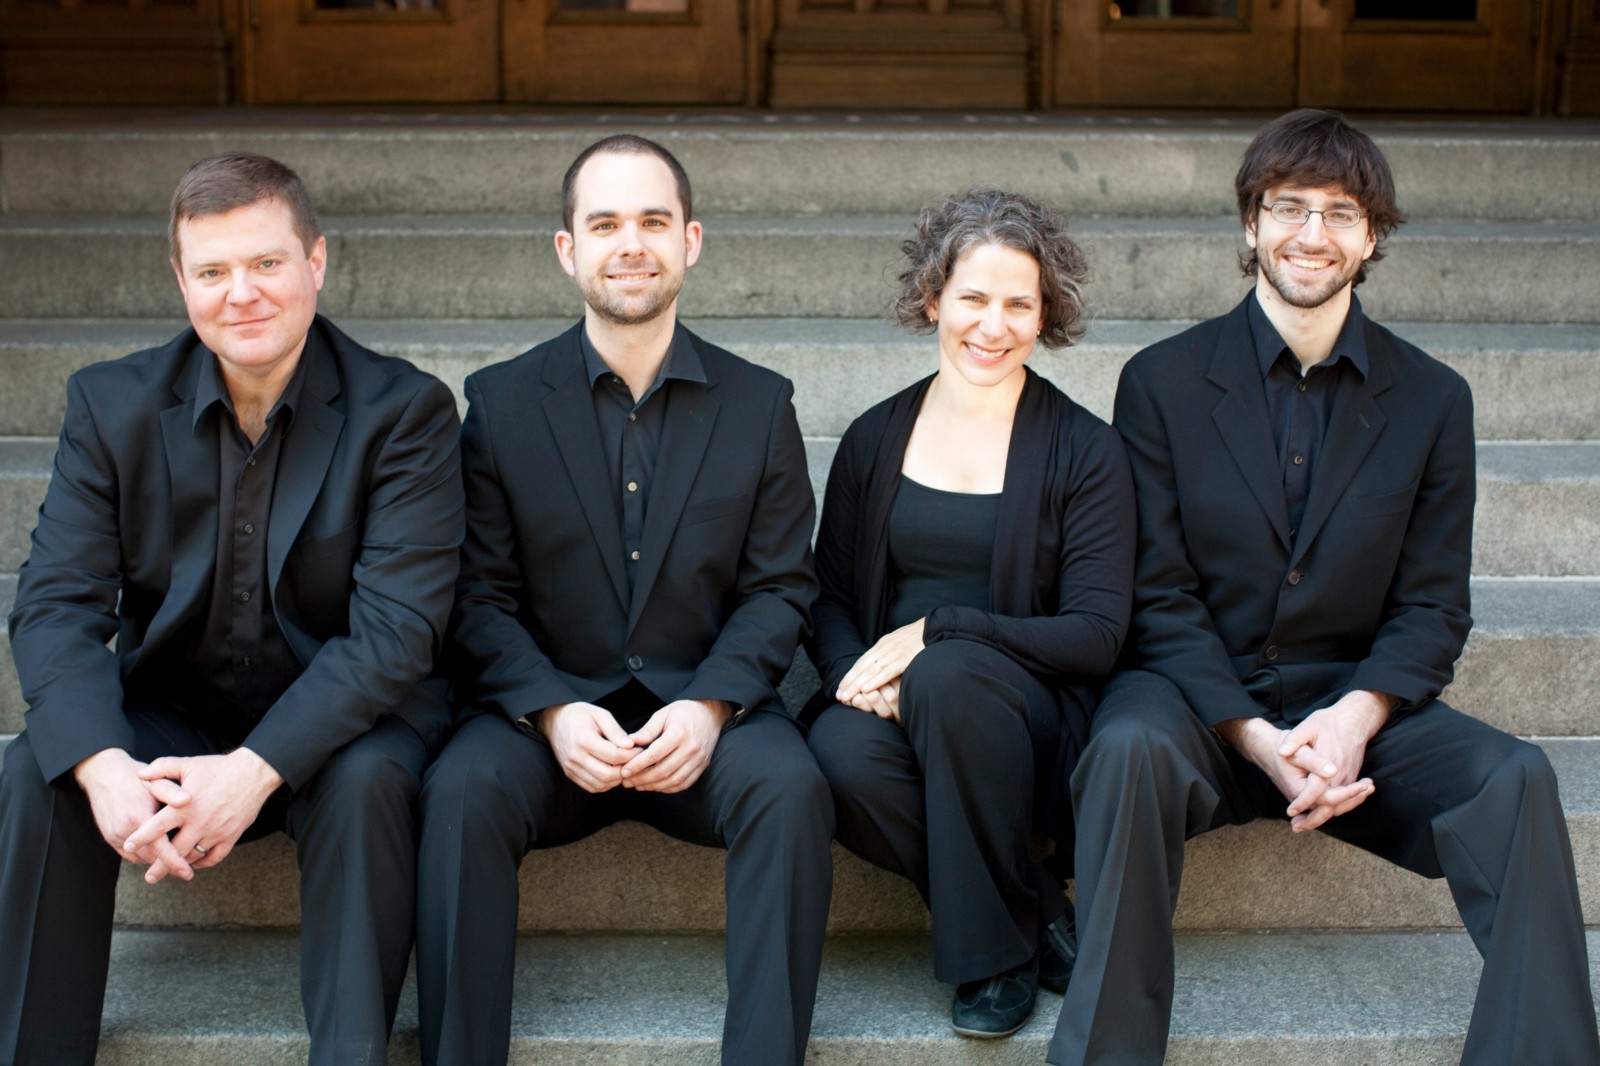 Tacoma Early Music Ensemble. Founding members Jim Brown, Josh Haberman, Anne Lyman and Thomas Thompson. Photo by Danielle Barnum.